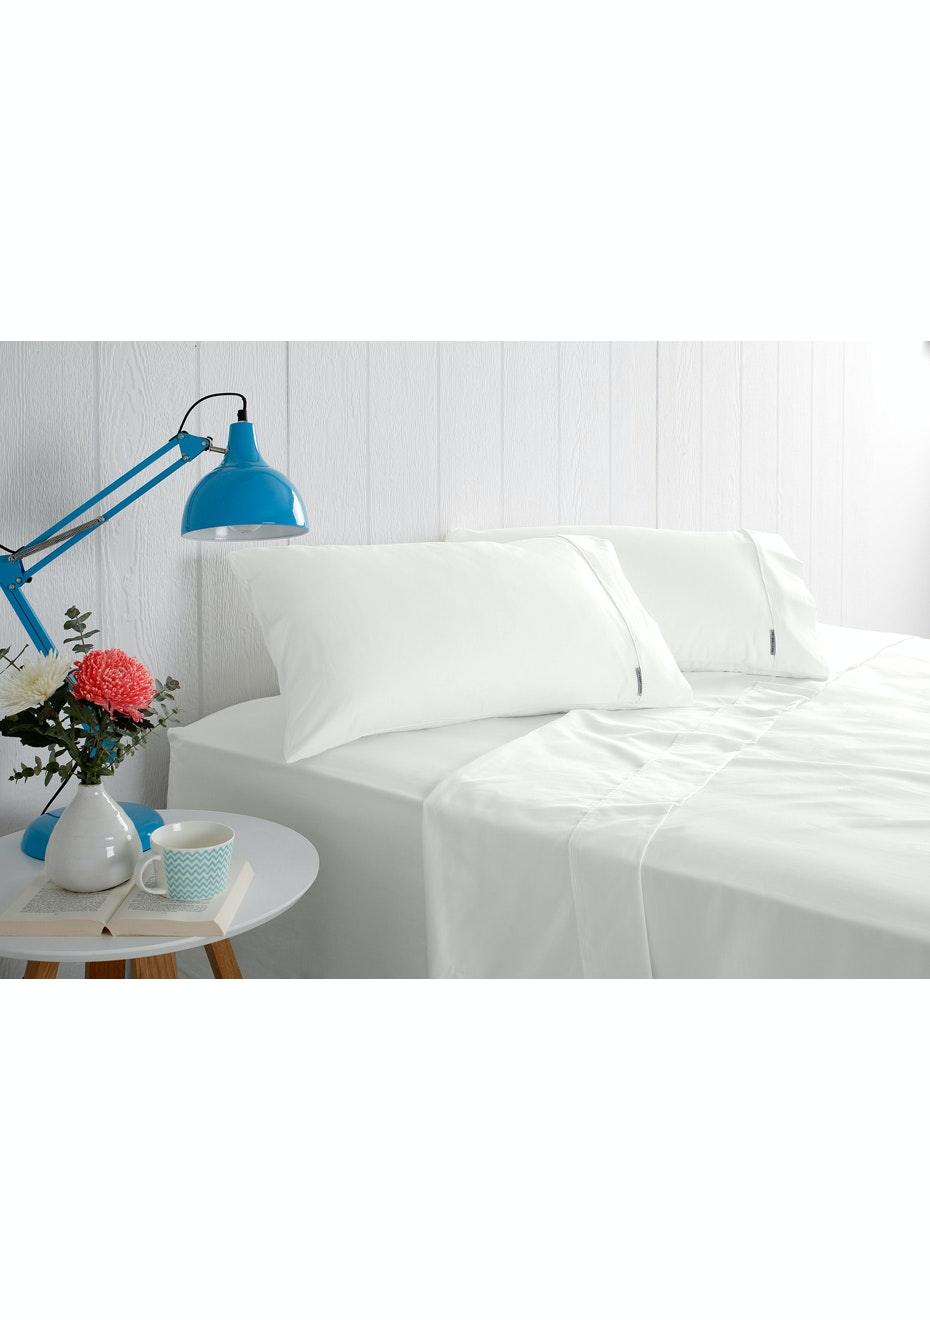 Odyssey Living 1000 Thread Count – Cotton Rich Sheet Sets - White - Mega Queen Bed